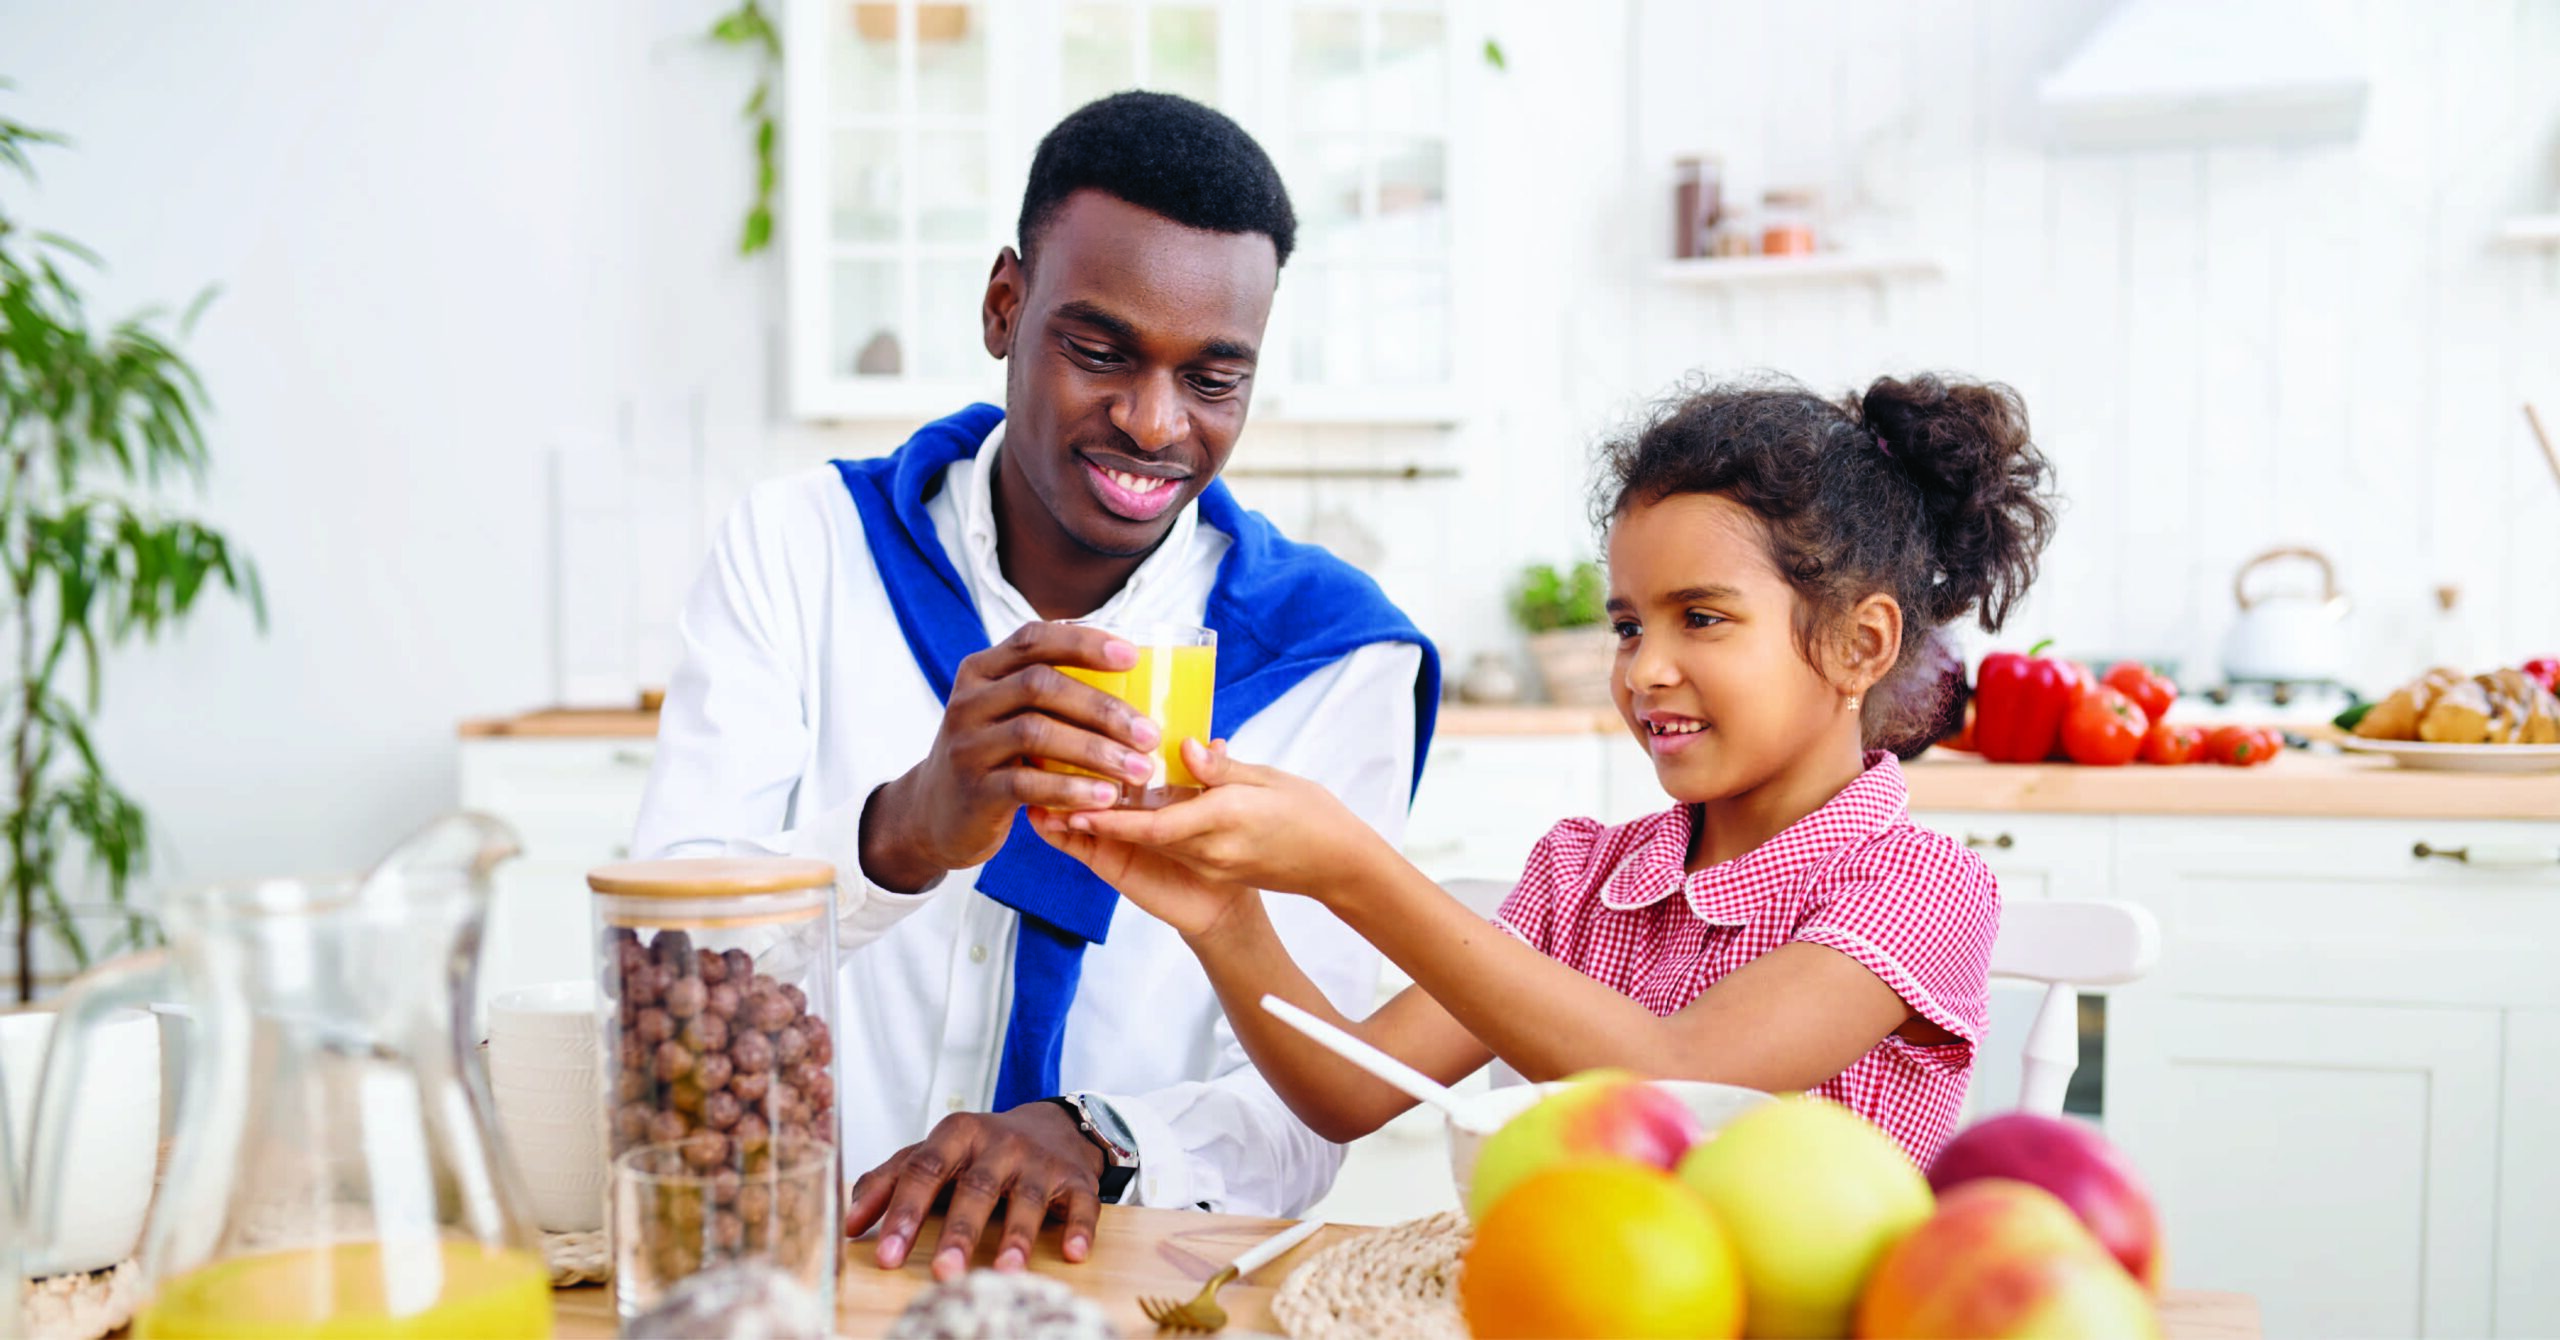 DOES DRINKING JUICE AFFECT YOUR CHILD'S TEETH?